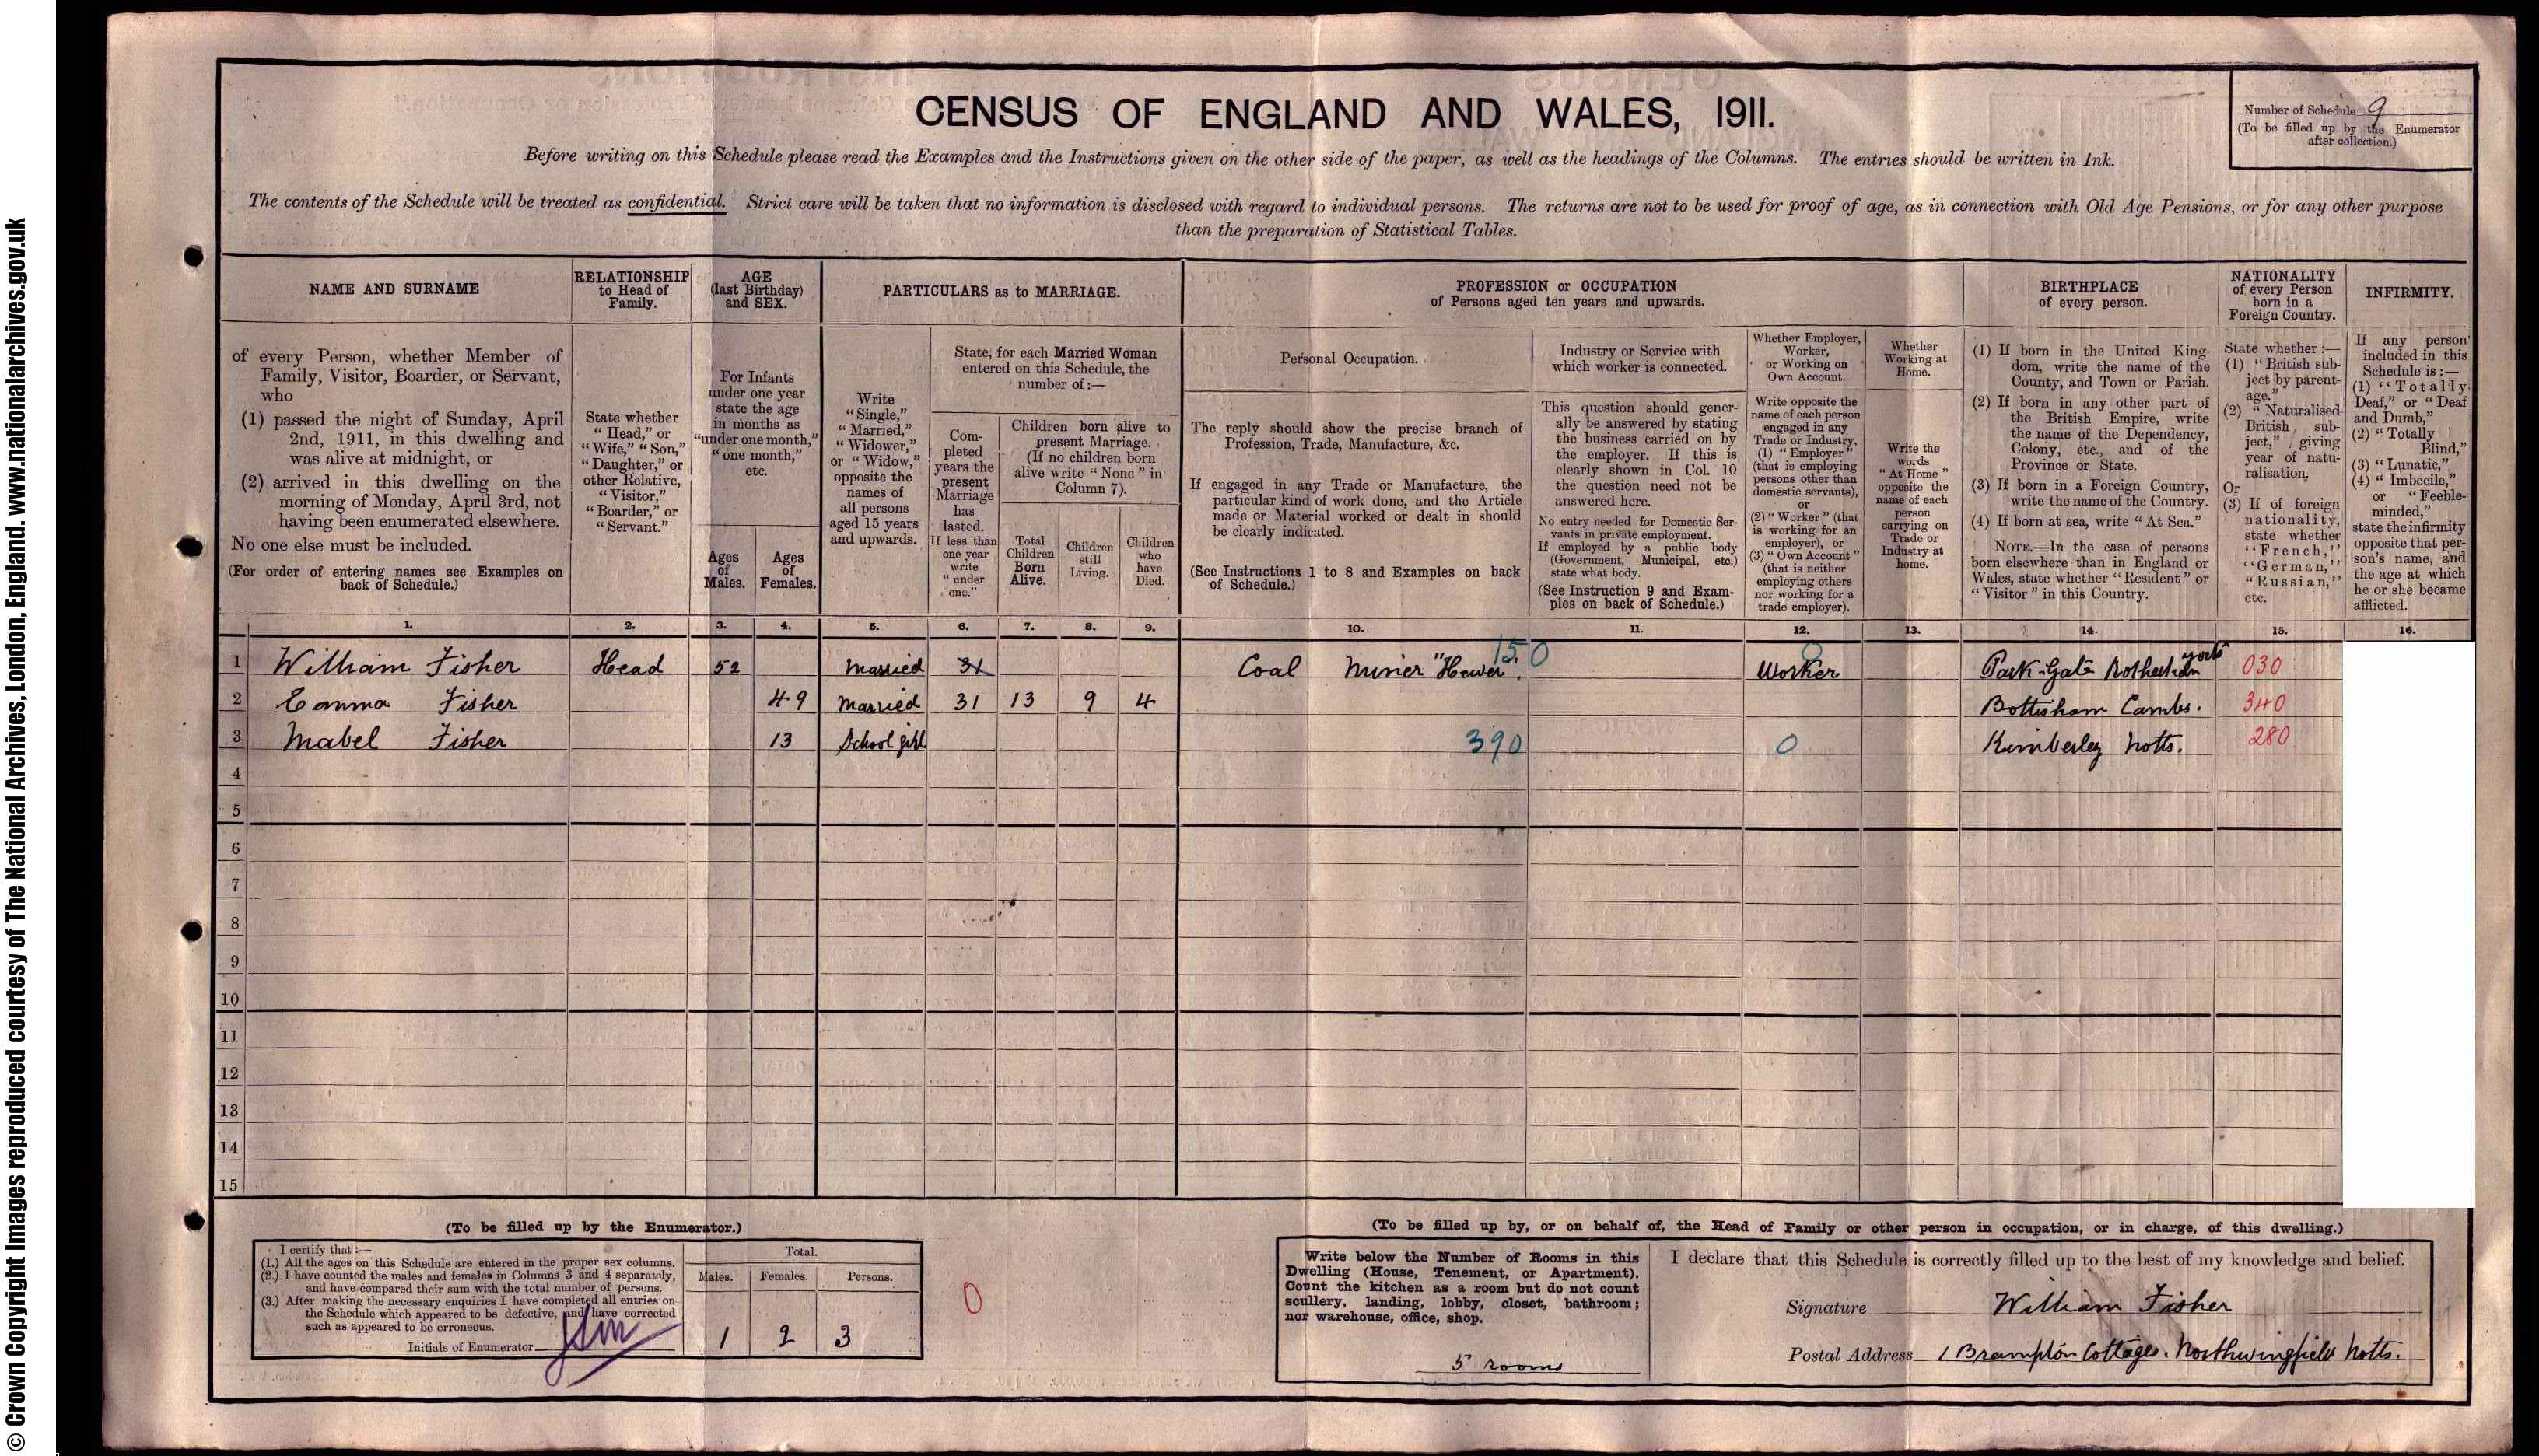 1911 England Census Record for William Fisher